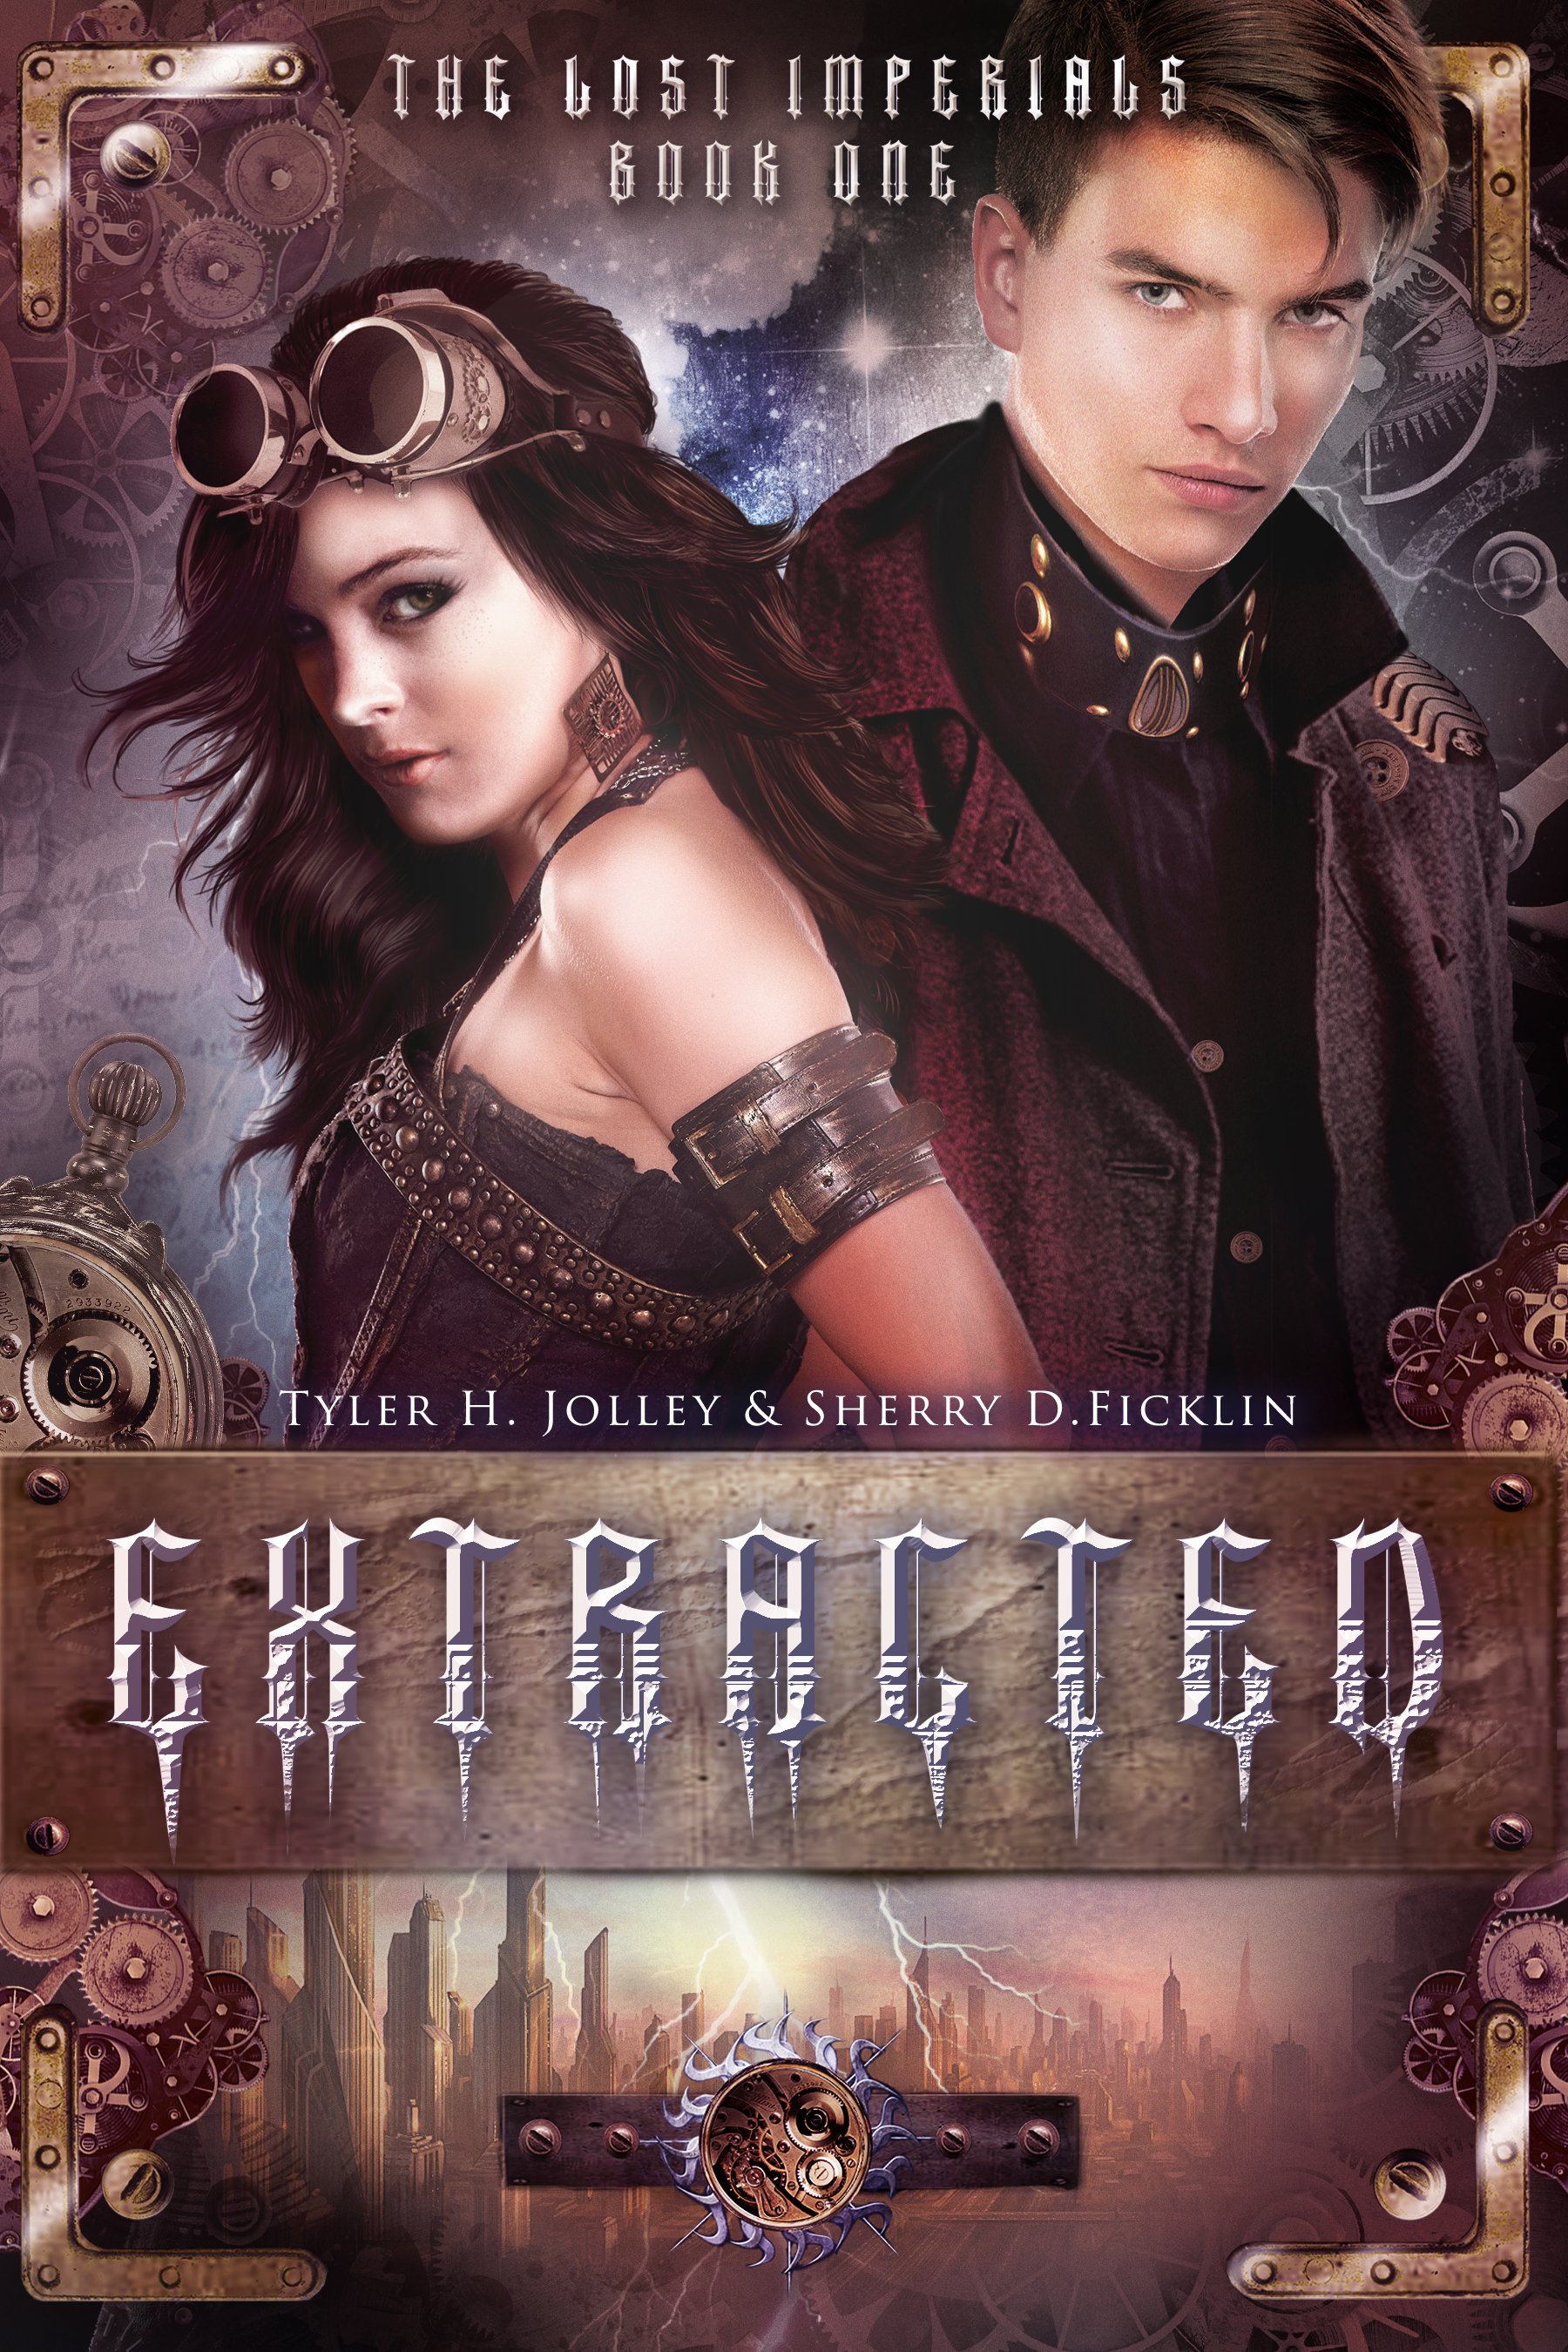 Cover Reveal – Extracted by Sherry D. Ficklin & Tyler H. Jolley